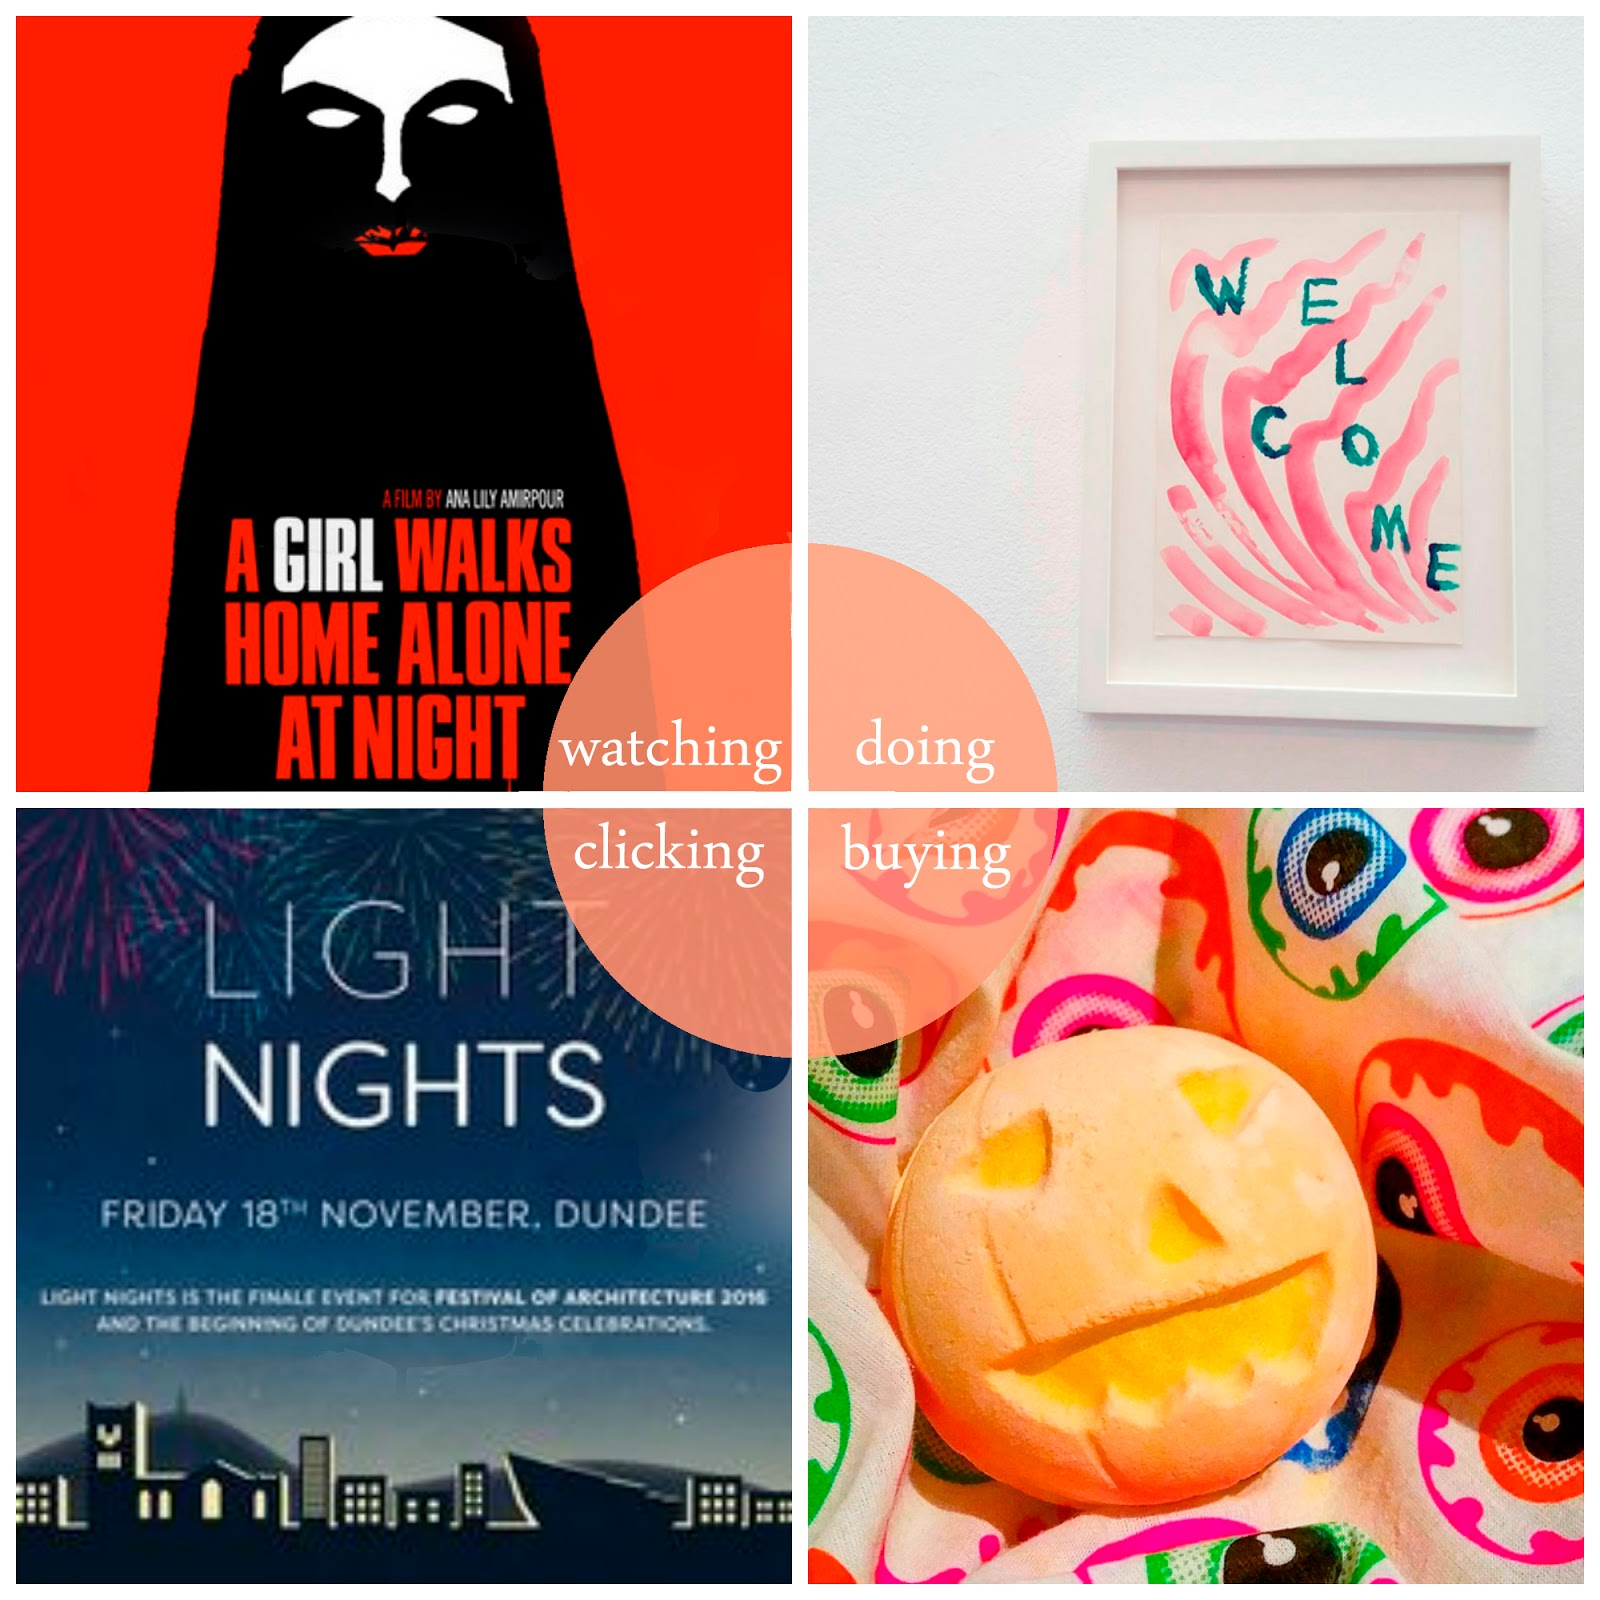 Round Up, best bits, october highlights, blogger highlights, October 2016, #31daysofhorror, horror films, horror film recommendations, A Girl Walks Home Alone at Night, Katy Dove, DCA, Lush halloween bath bomb, Lush Halloween scarf, Light Nights Dundee